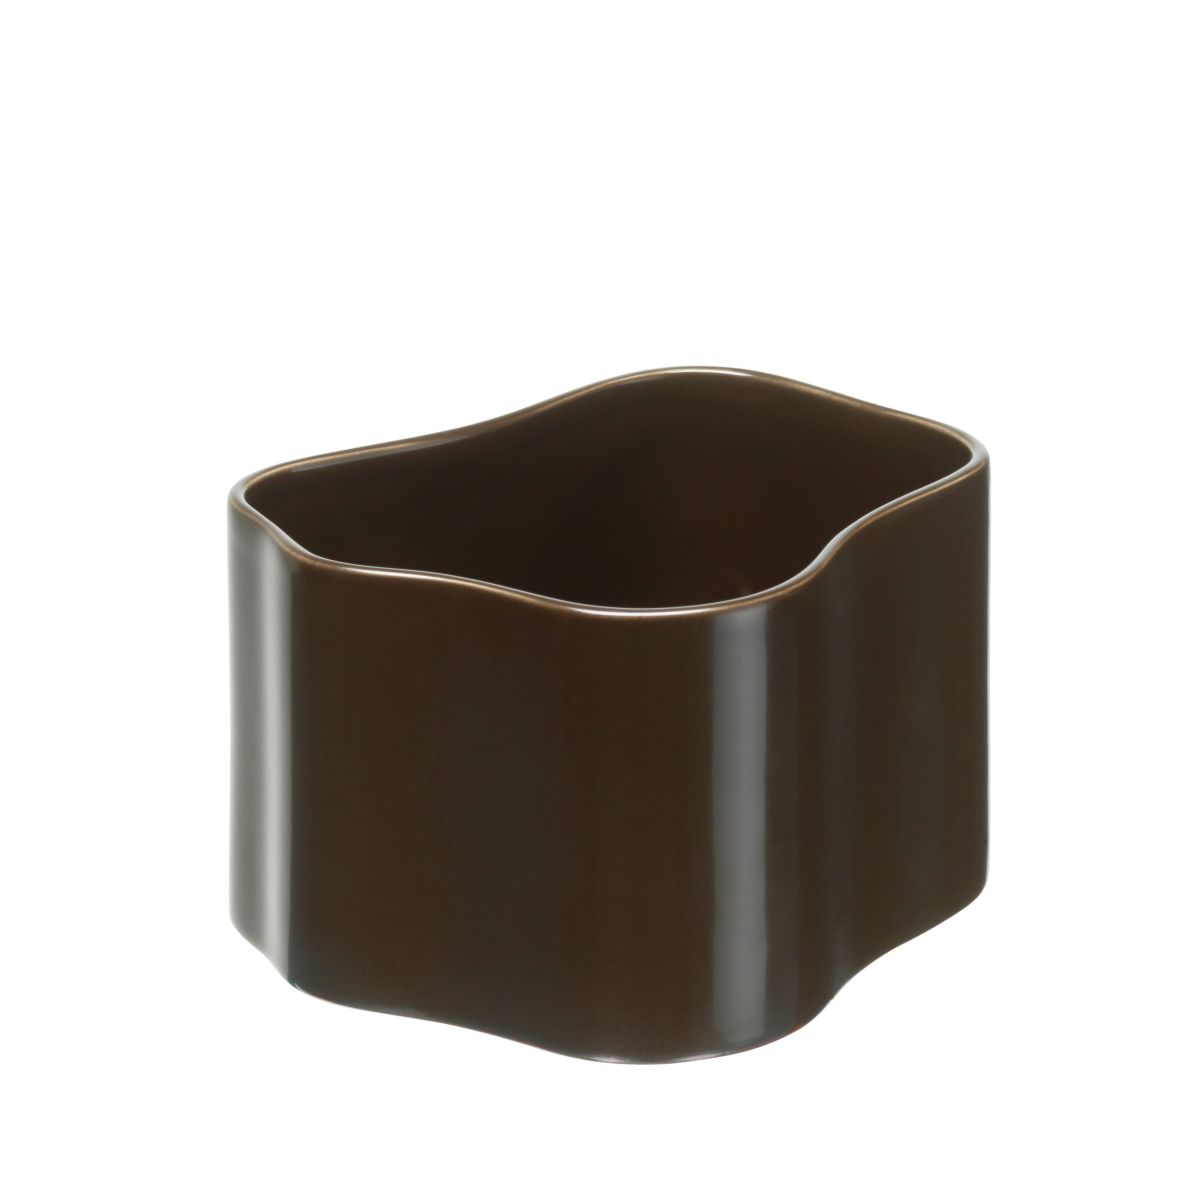 Plant pot shape B, size S, Dark brown gloss_F